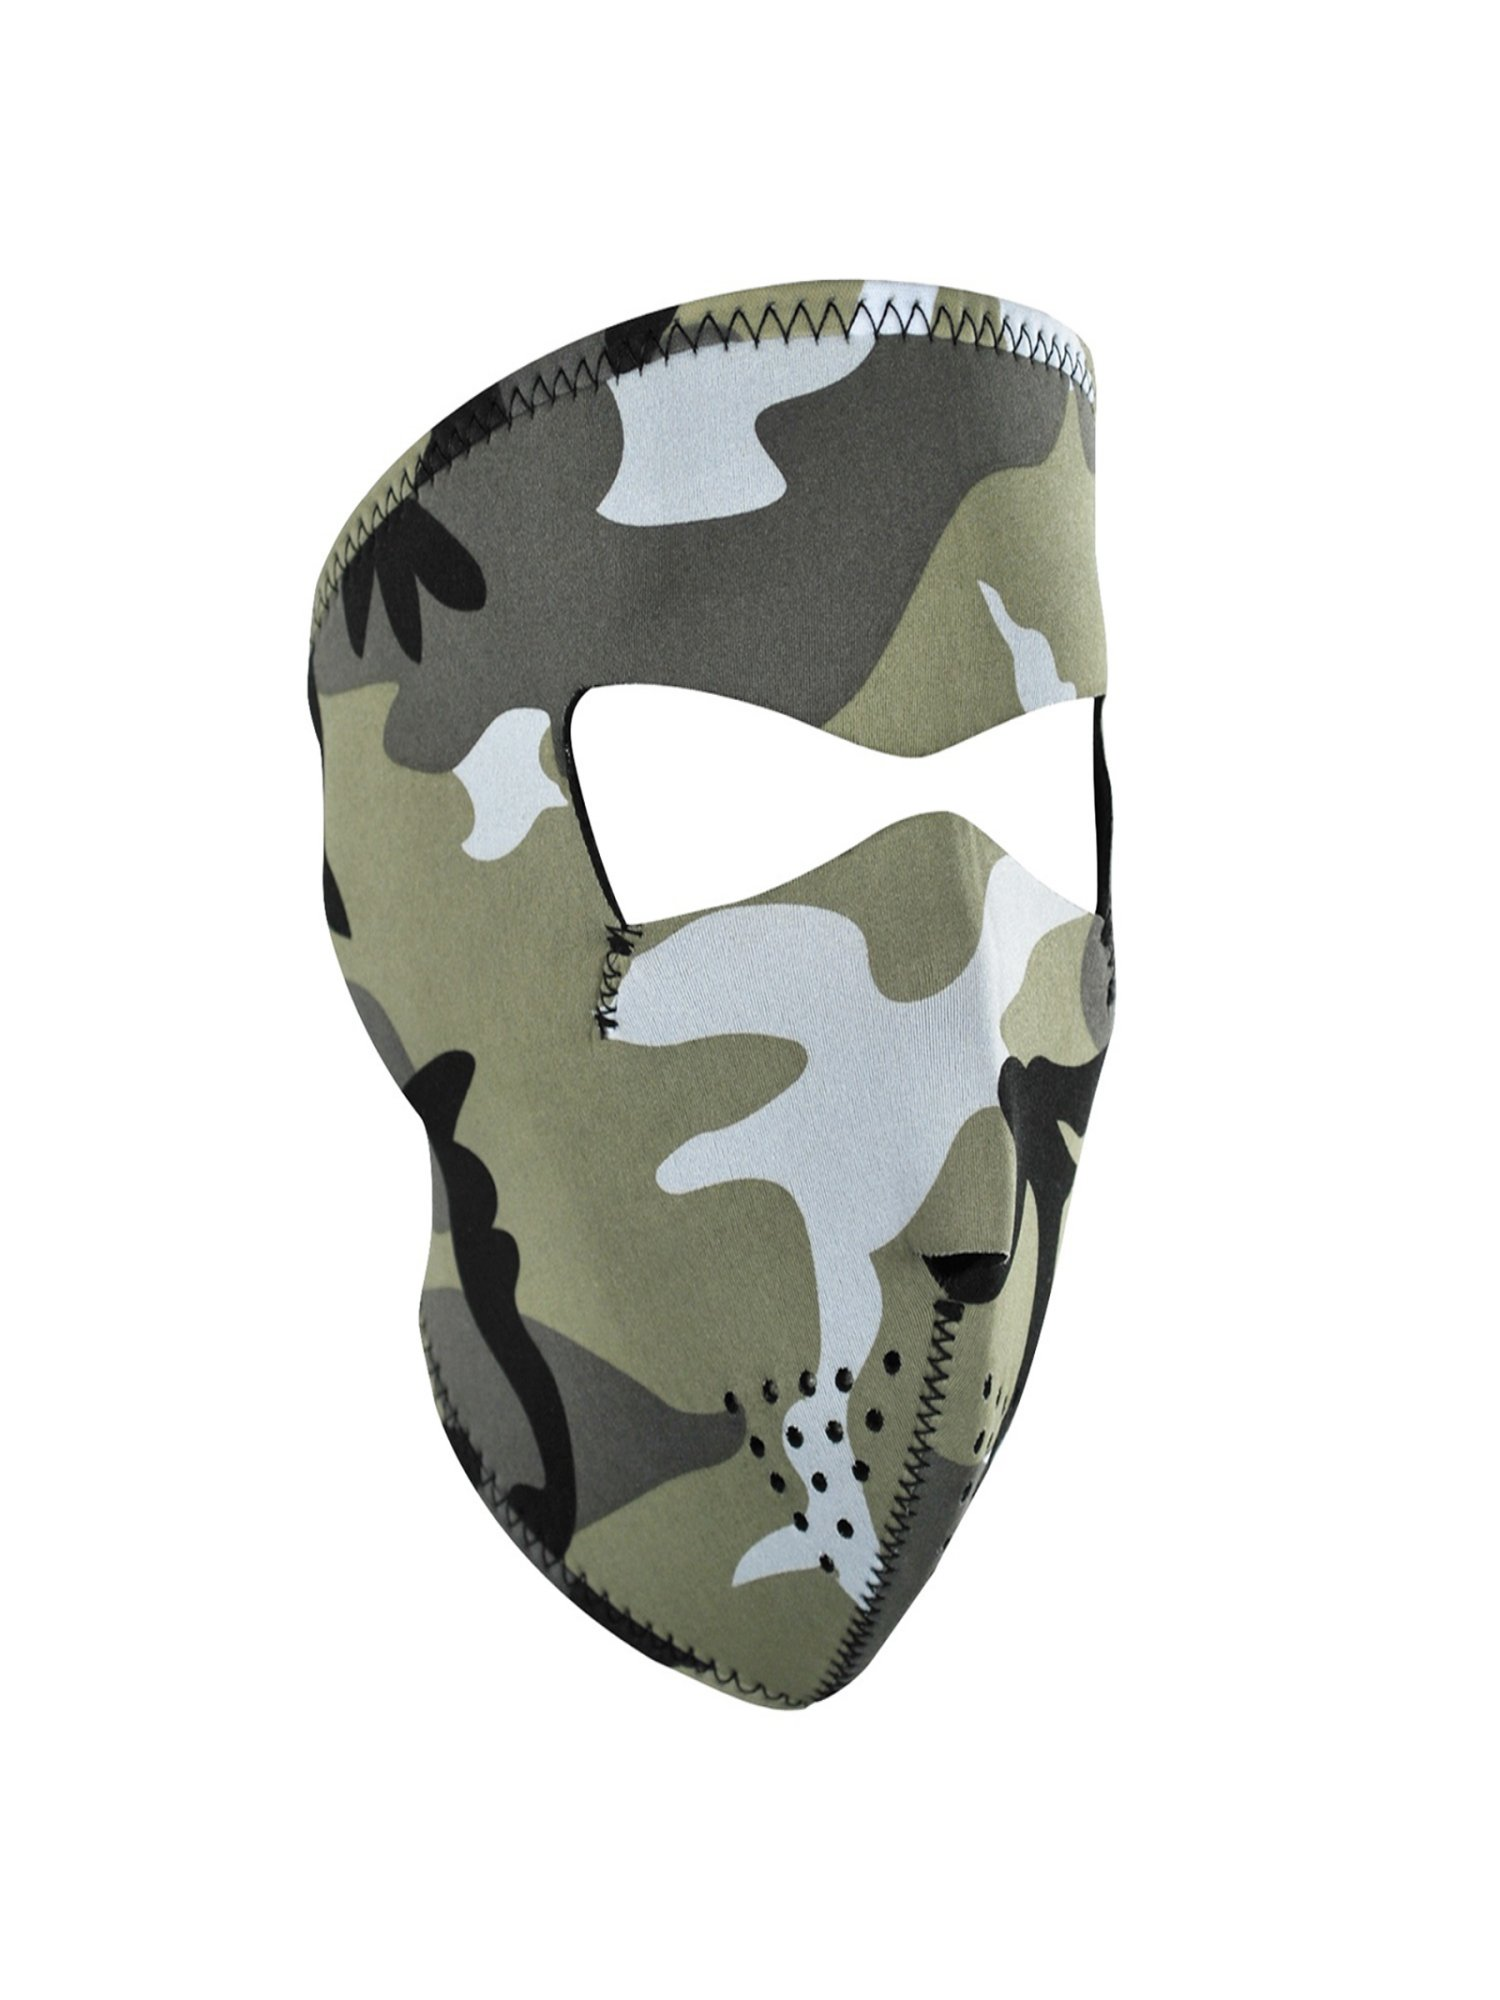 ZANheadgear Neoprene Full Mask by Zan Headgear